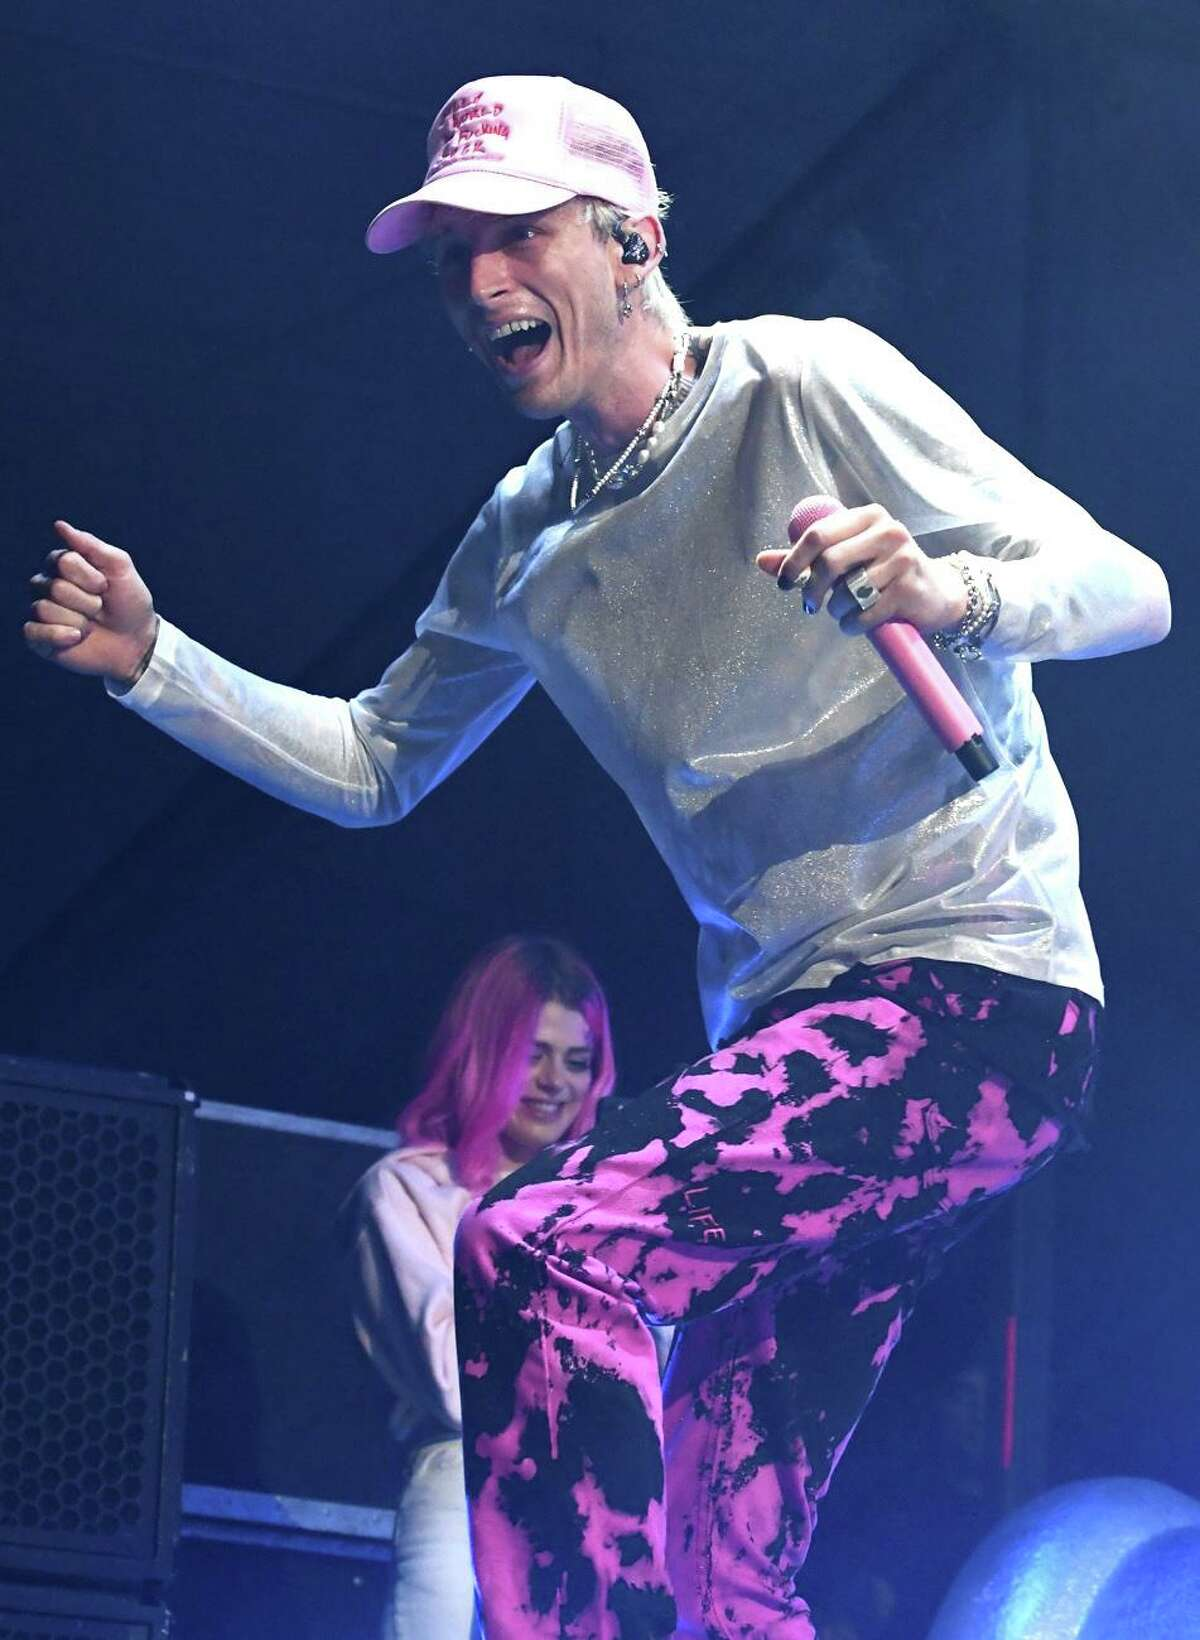 """Rapper, singer, songwriter, and actor Colson Baker, known professionally asMachine Gun Kelly is shown performing to a sold out crowd on the opening night of The Big E in West Springfield, Massachusetts September 17, 2021. MGK released his latest album, """"Tickets to My Downfall"""", in 2020. It debuted at number one on the Billboard 200, the only rock album to do so that year, and contained the single """"My Ex's Best Friend"""". To learn more about MGK you can visit www.machinegunkelly.com"""